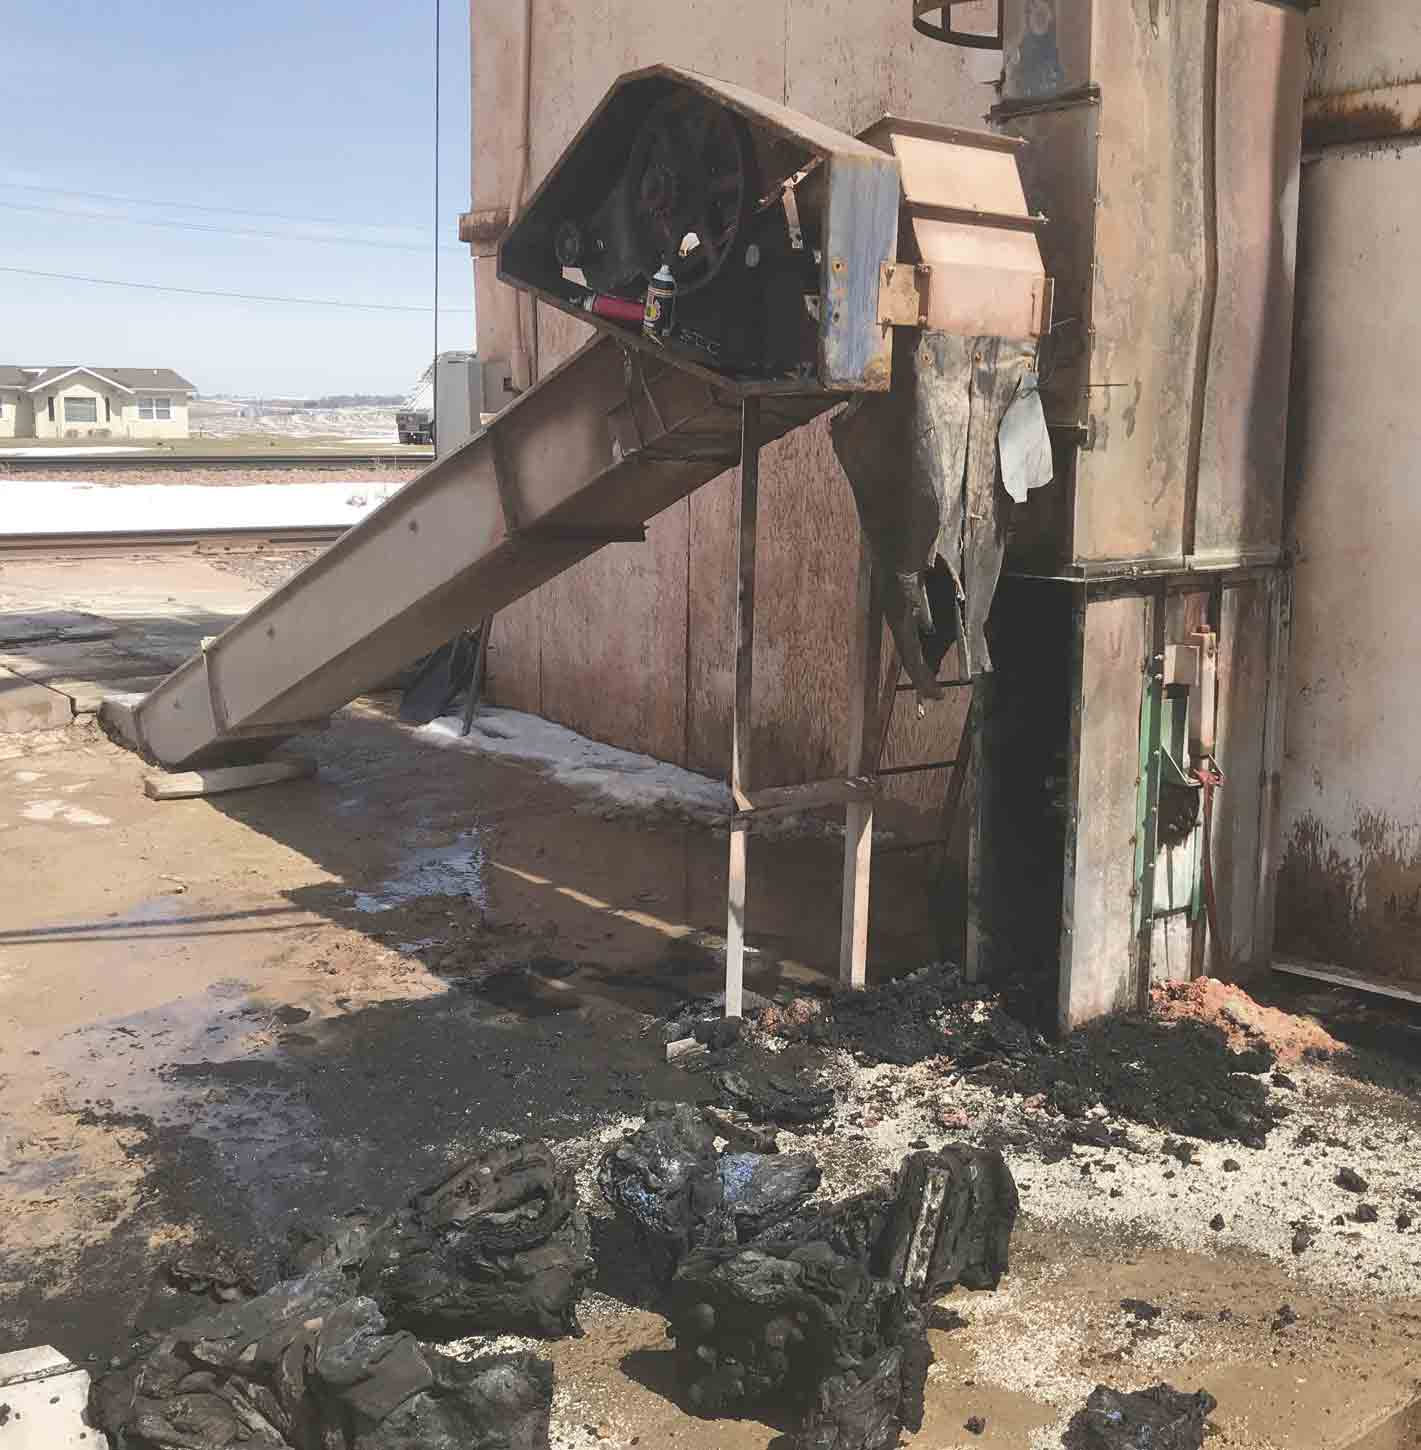 A fire broke out at the old fertilizer plant, which still contains fertilizer, owned by Farmers Union Co-op in Ossian on Friday afternoon. Due to the volatility of the situation and the number of children in close proximity to the blaze, students from DeSales School and DeSales Childcare...